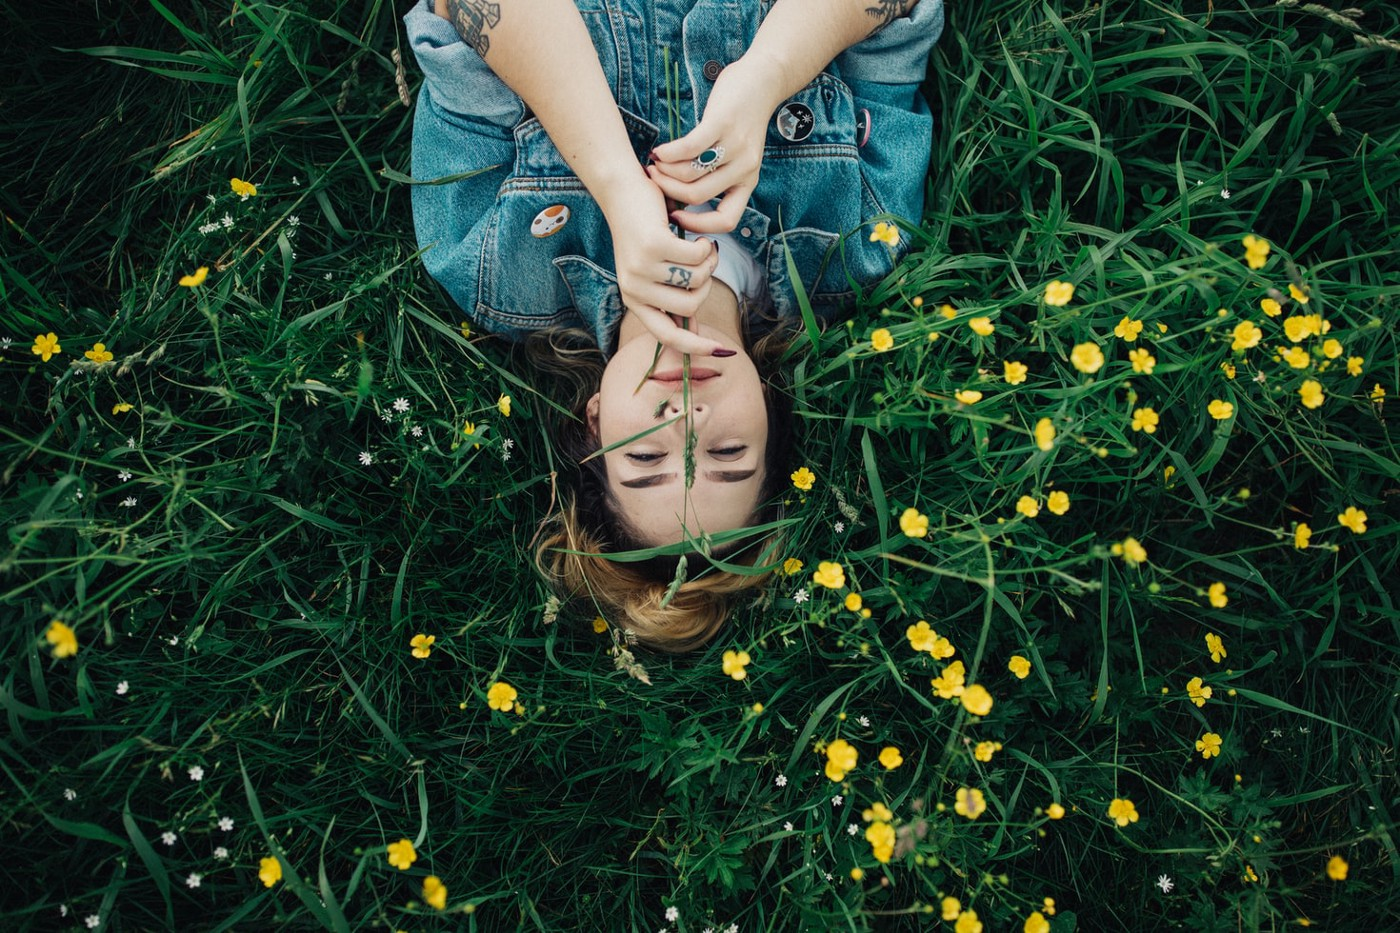 A young woman lays in the grass with a smile on her face. Yellow flowers surround her.